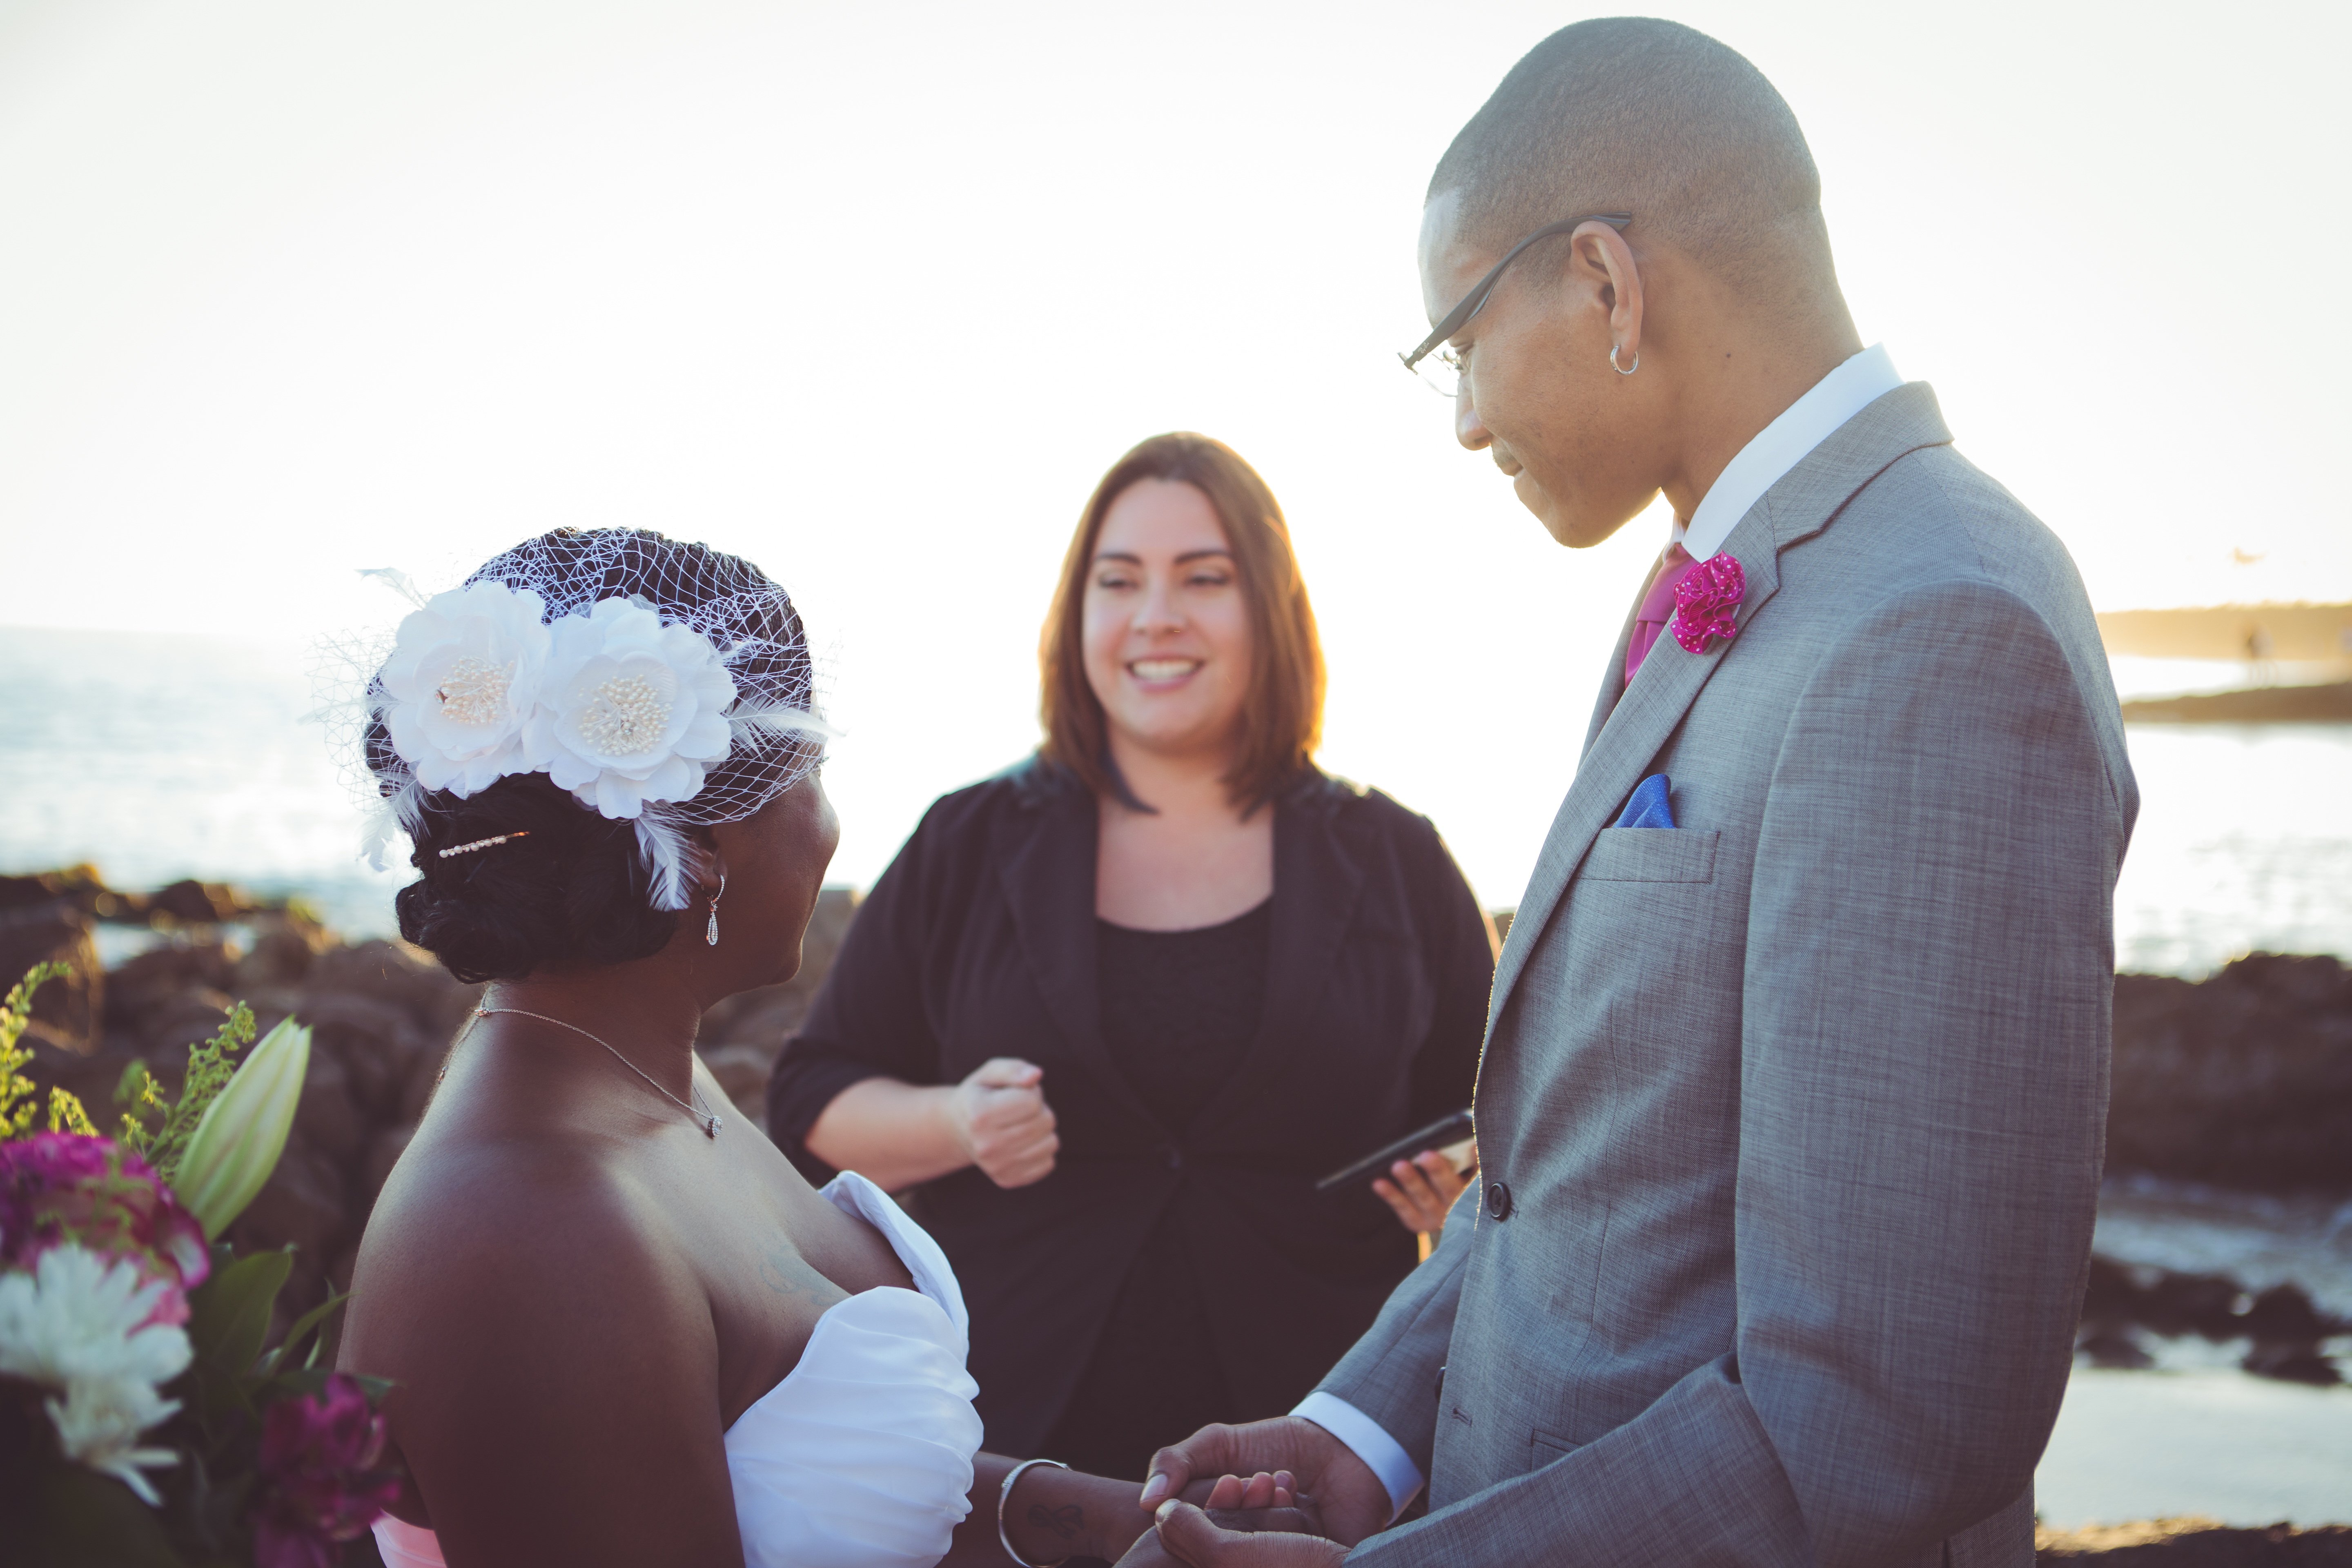 Go Wedding Officiant   Marie Burns Holzer Wedding Officiant And Celebrant Of Awesome People